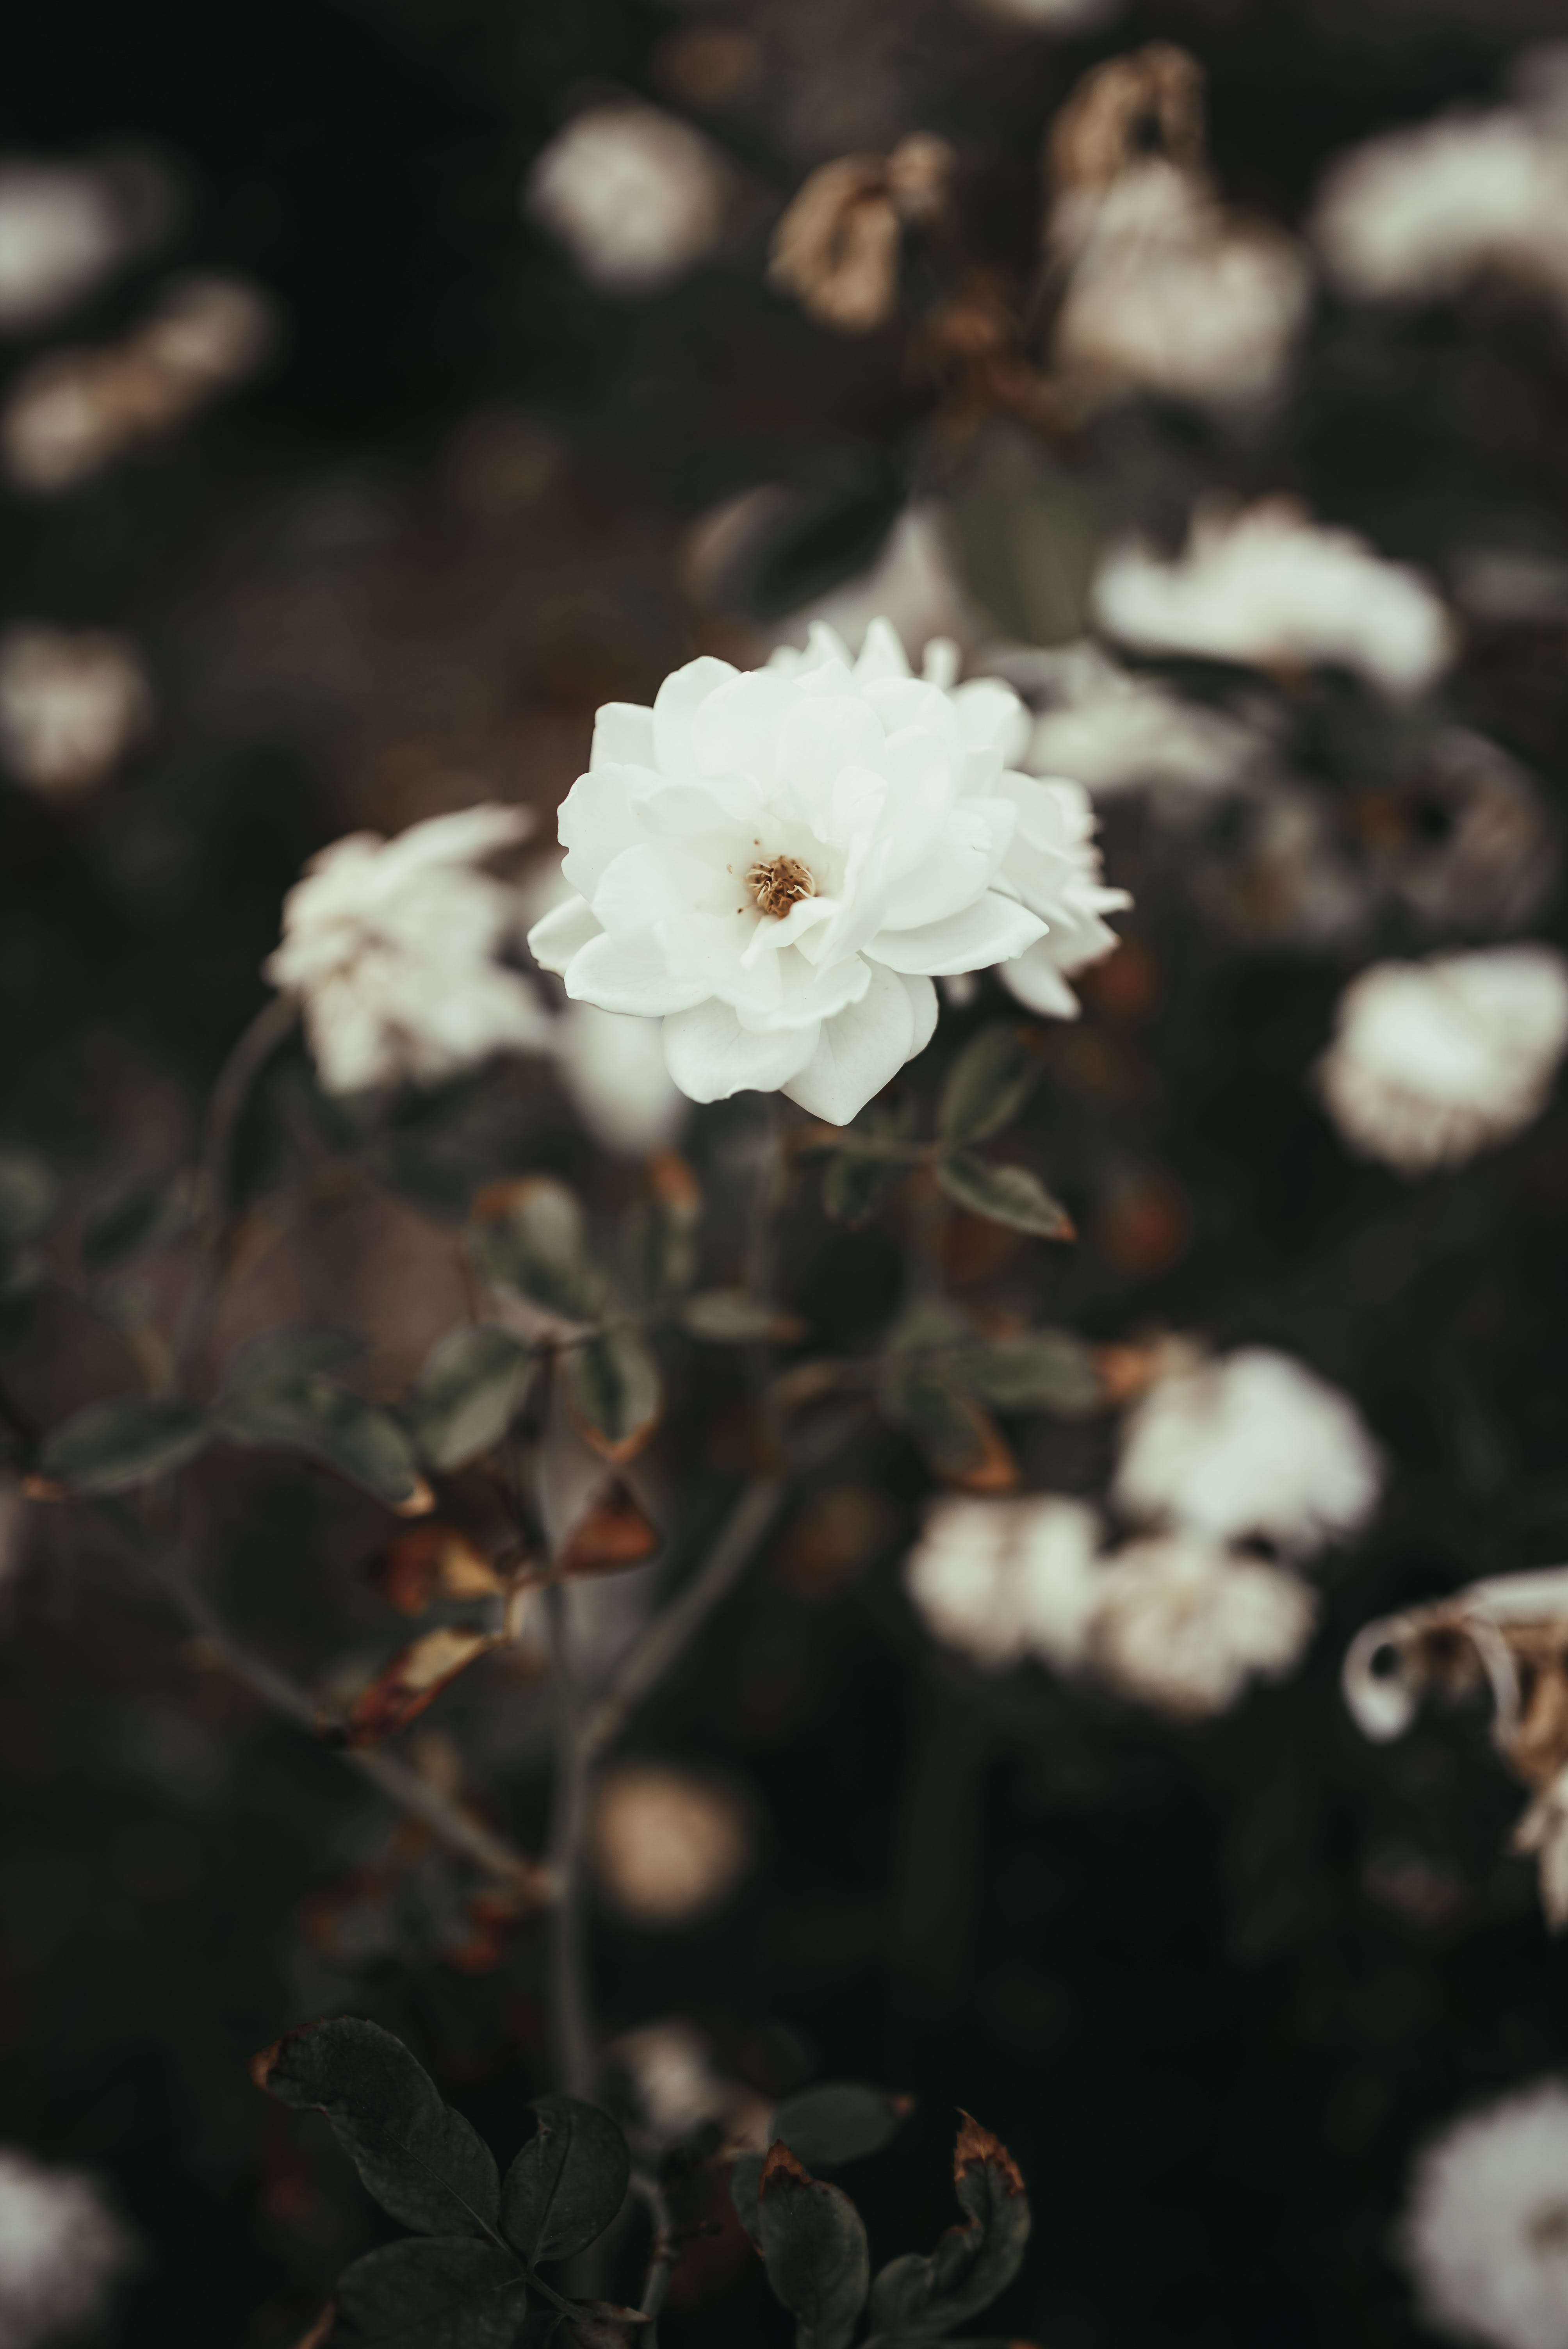 Selective Focus Photography of a White Rose